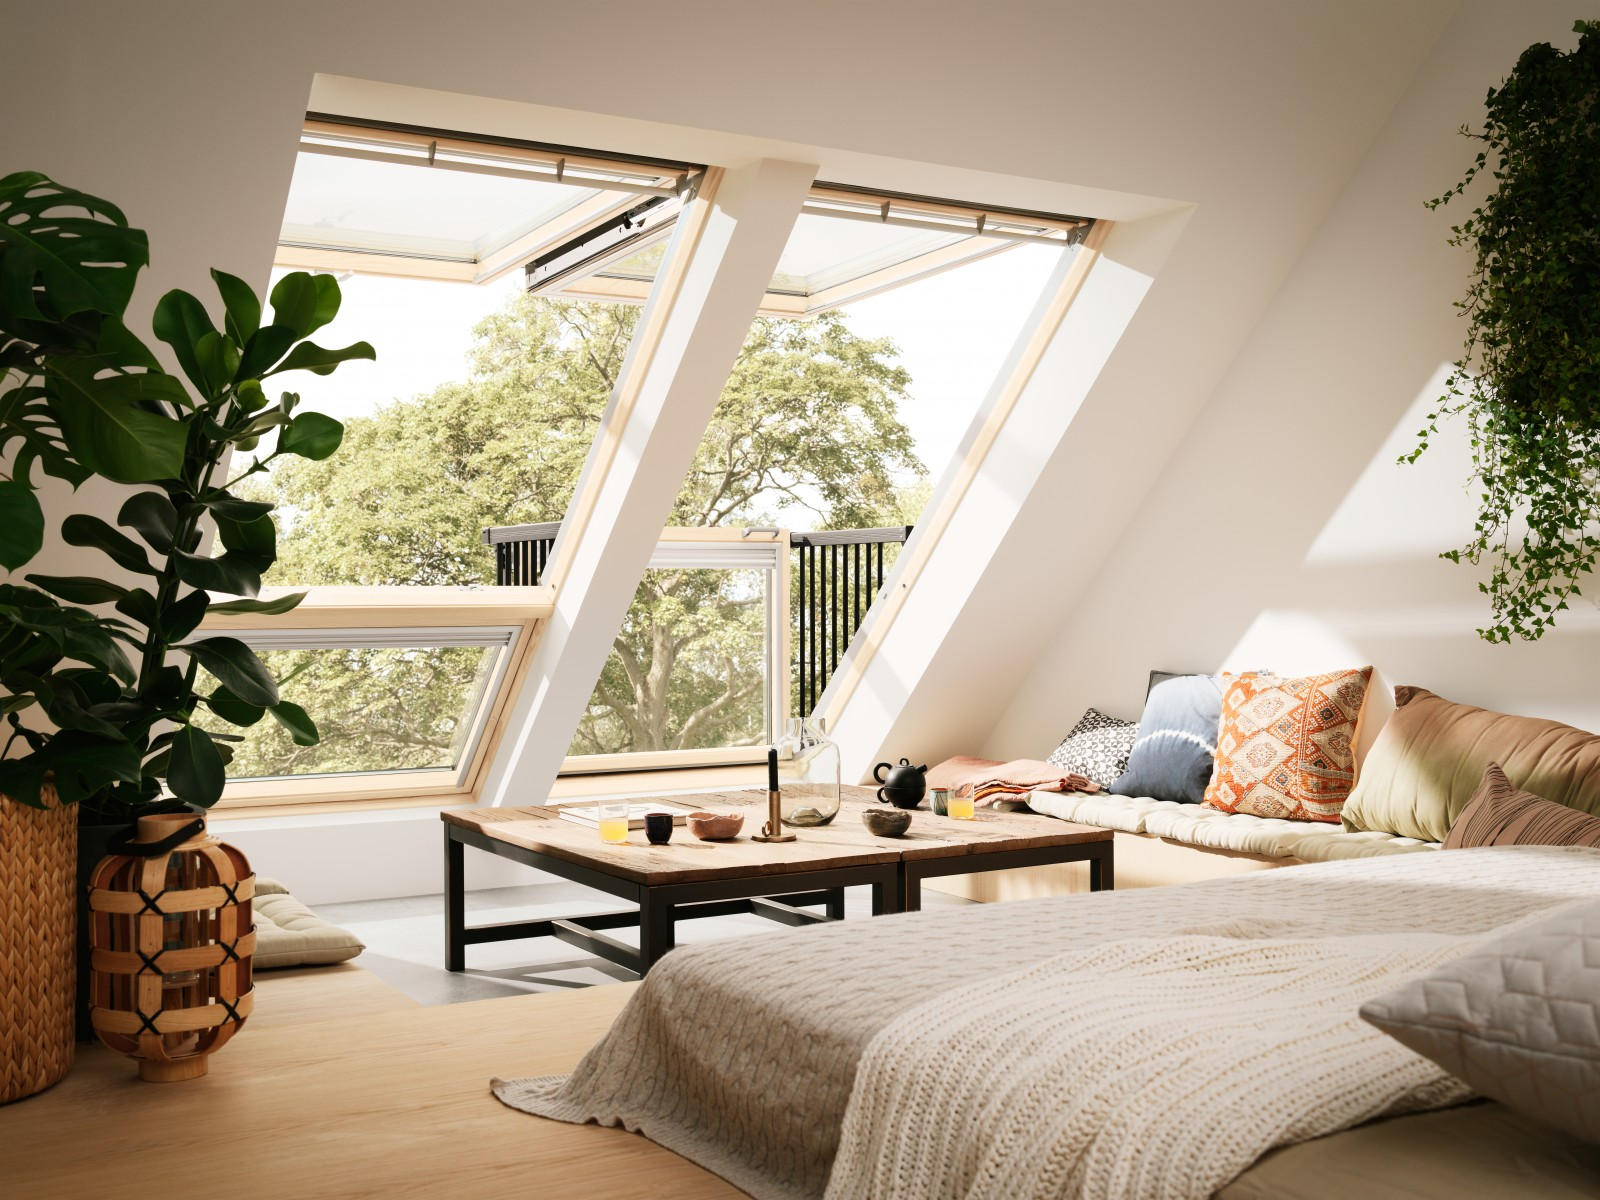 velux remporte le prix de l innovation novibat avec sa nouvelle verri re balcon cabrio. Black Bedroom Furniture Sets. Home Design Ideas